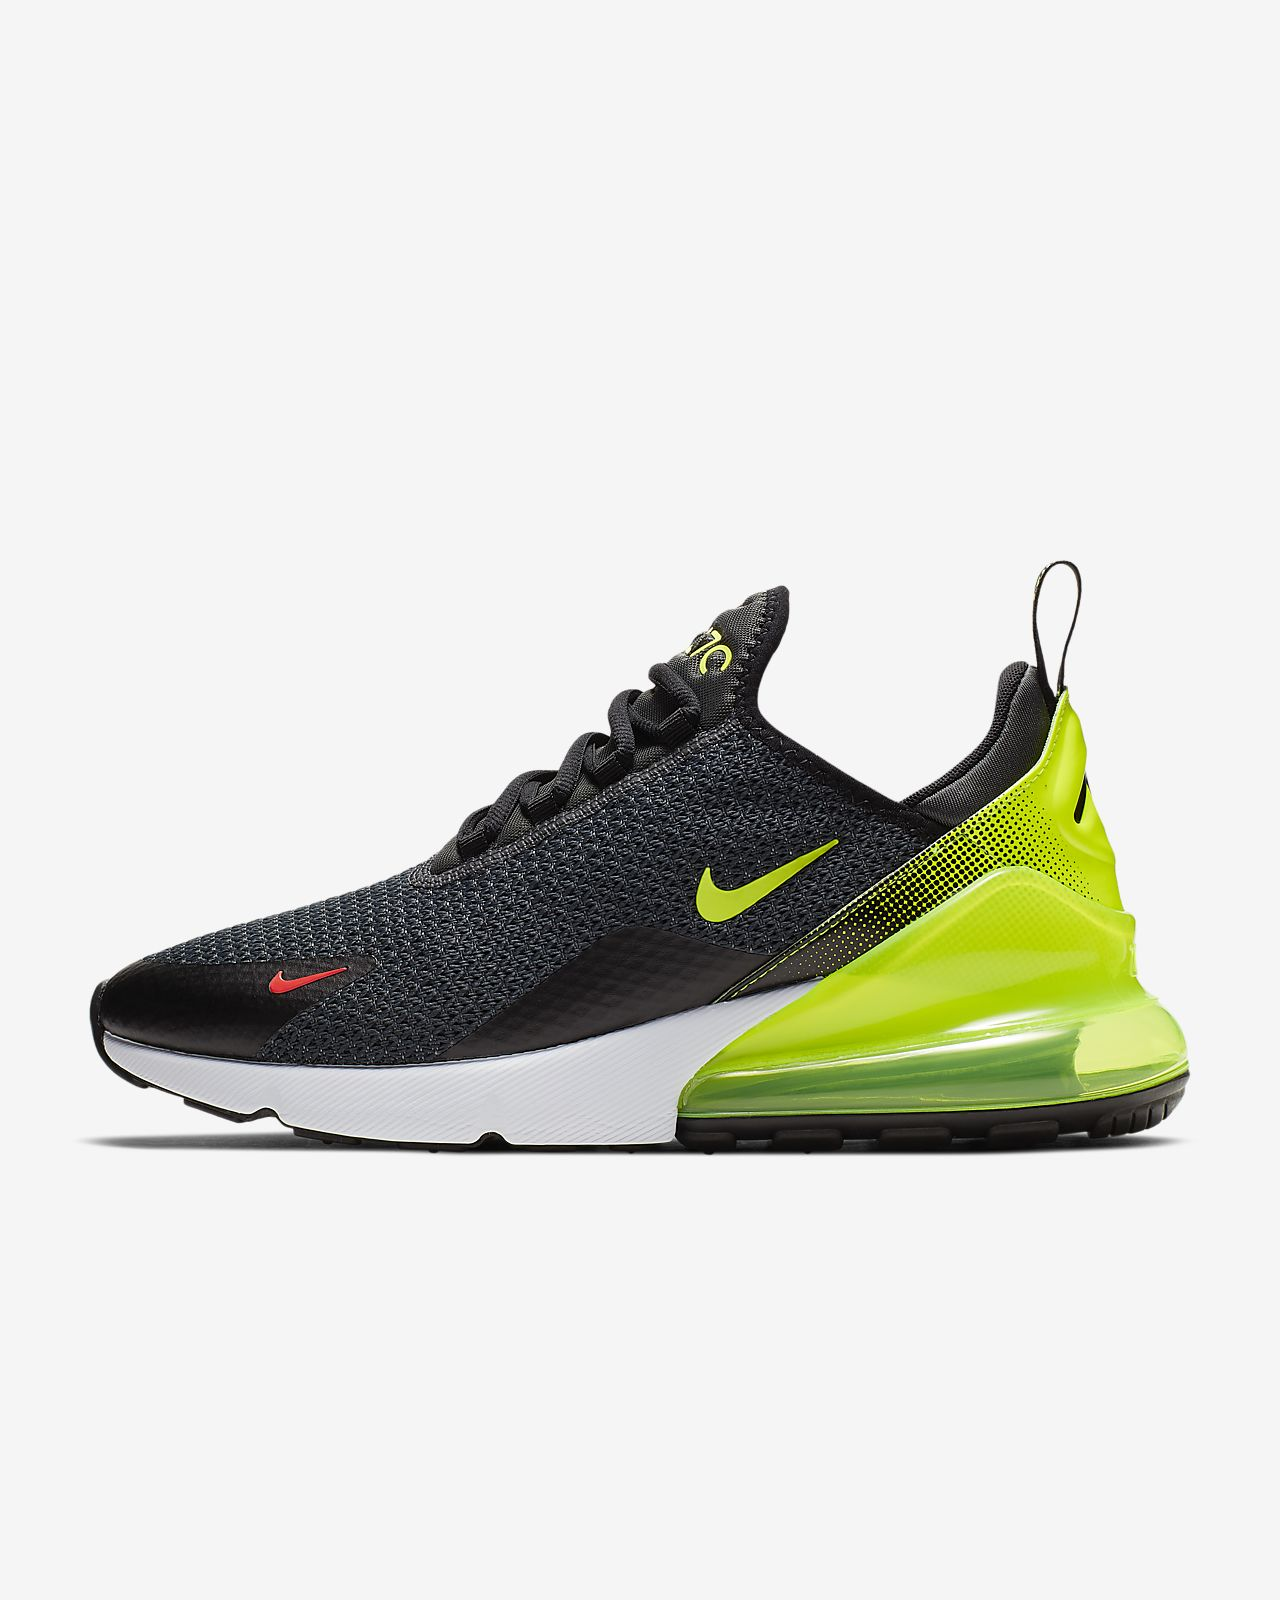 6a6b3fac1a Nike Air Max 270 SE Men's Shoe. Nike.com GB